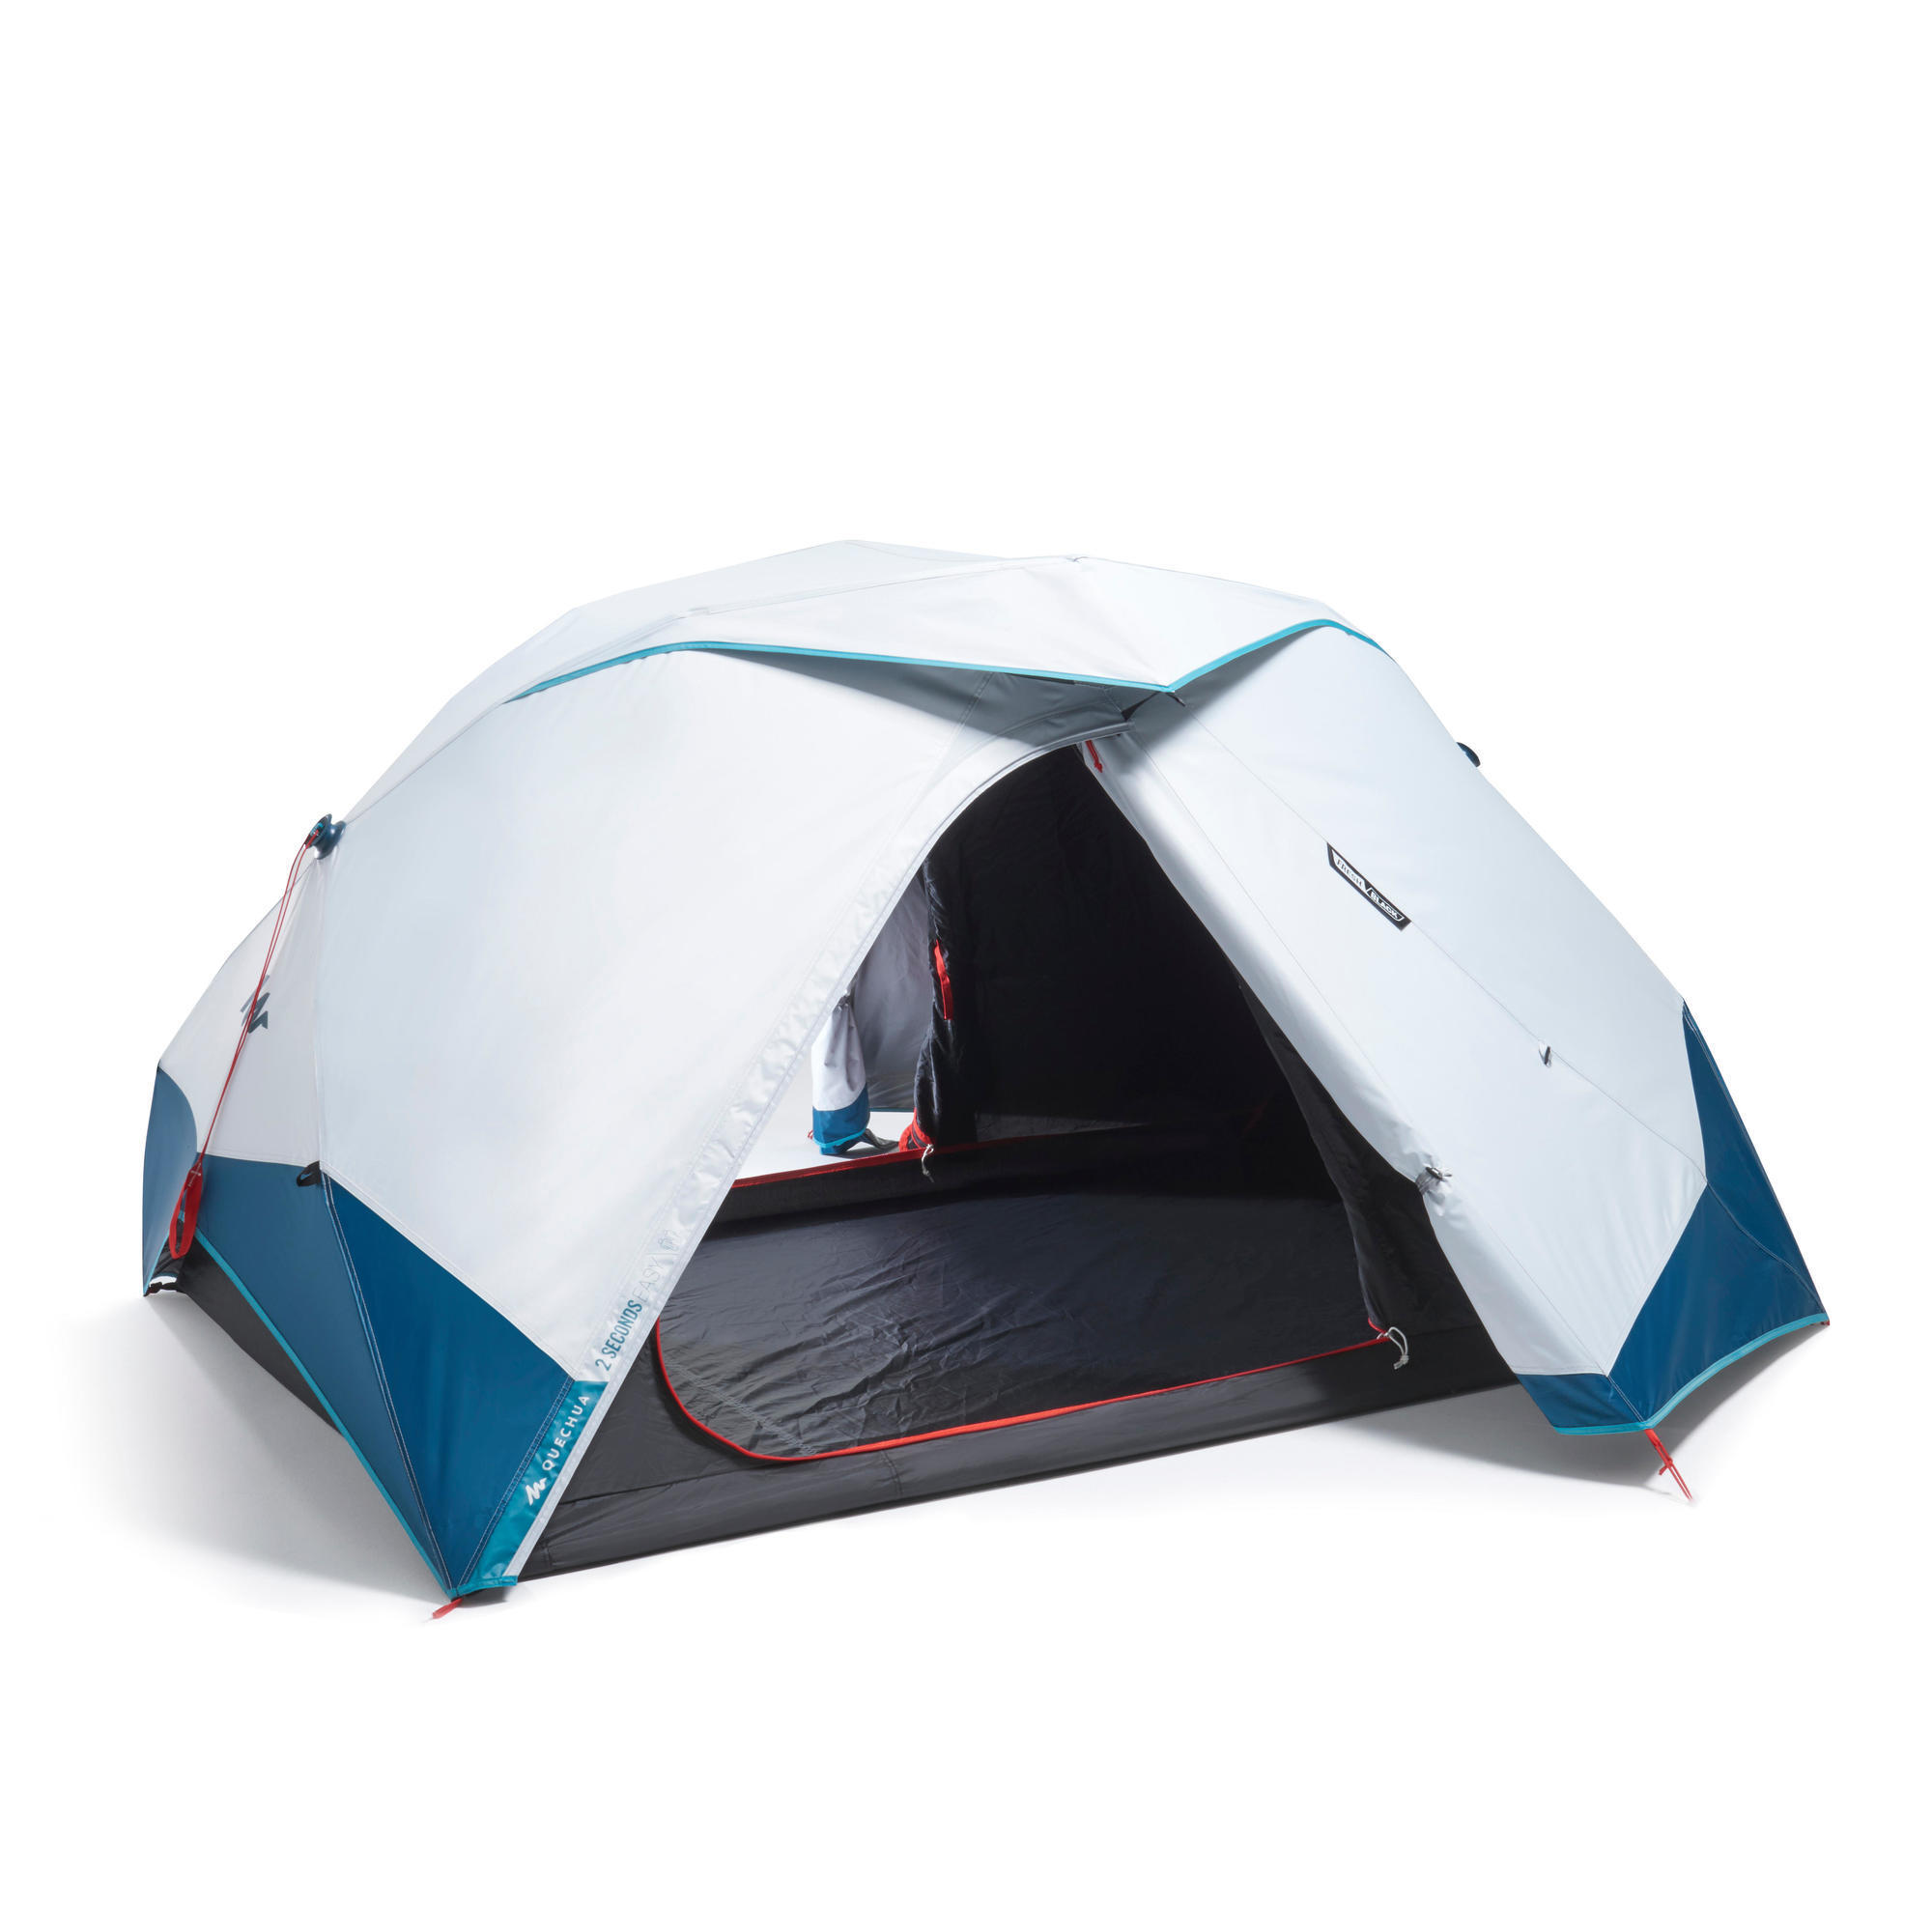 CAMPING TENT 2 SECONDS EASY - FRESH & BLACK - 2 PERSON ...